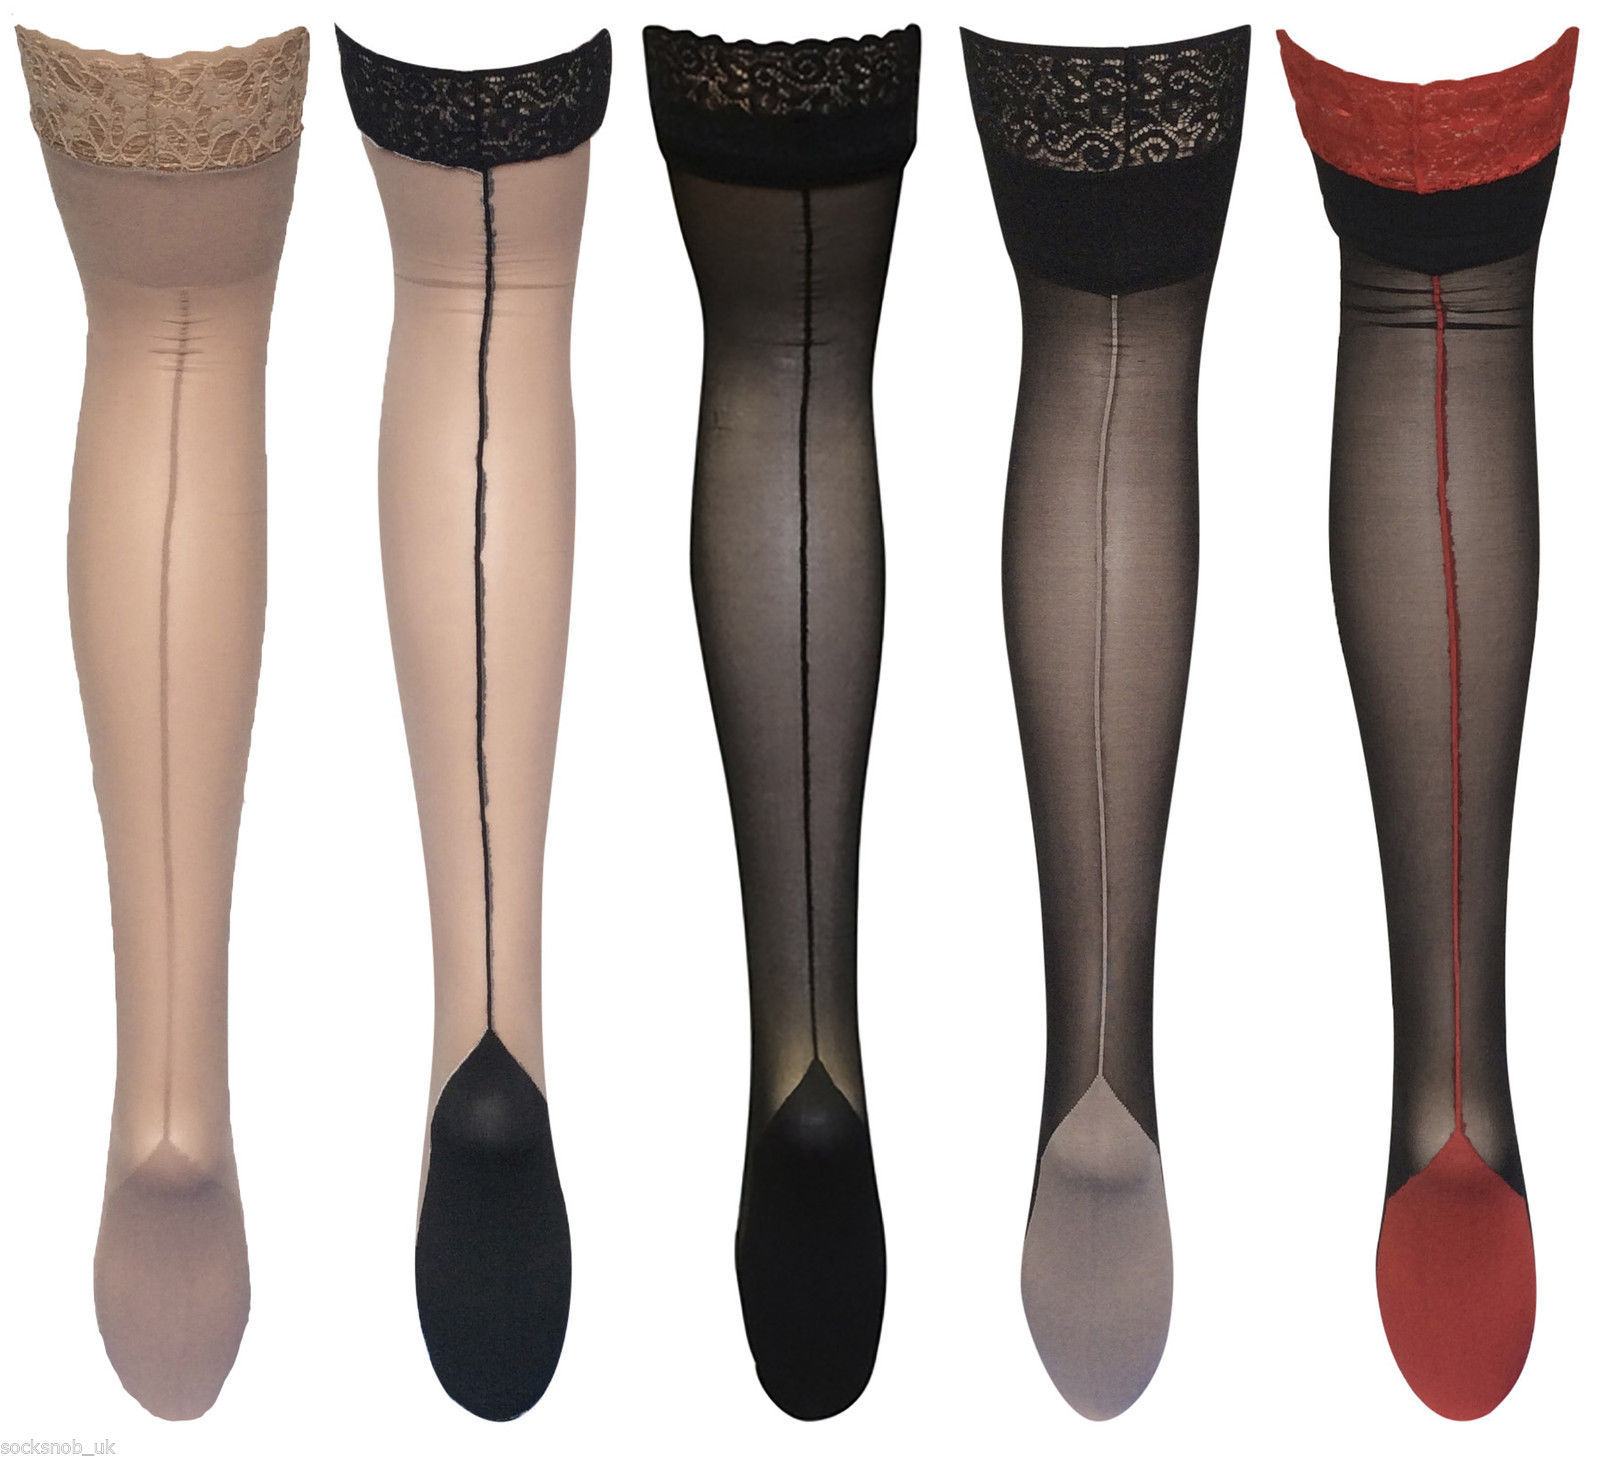 Womens's Quality seamed Cuban heel Deep Lace top Hold ups, One size 8-14,36-42